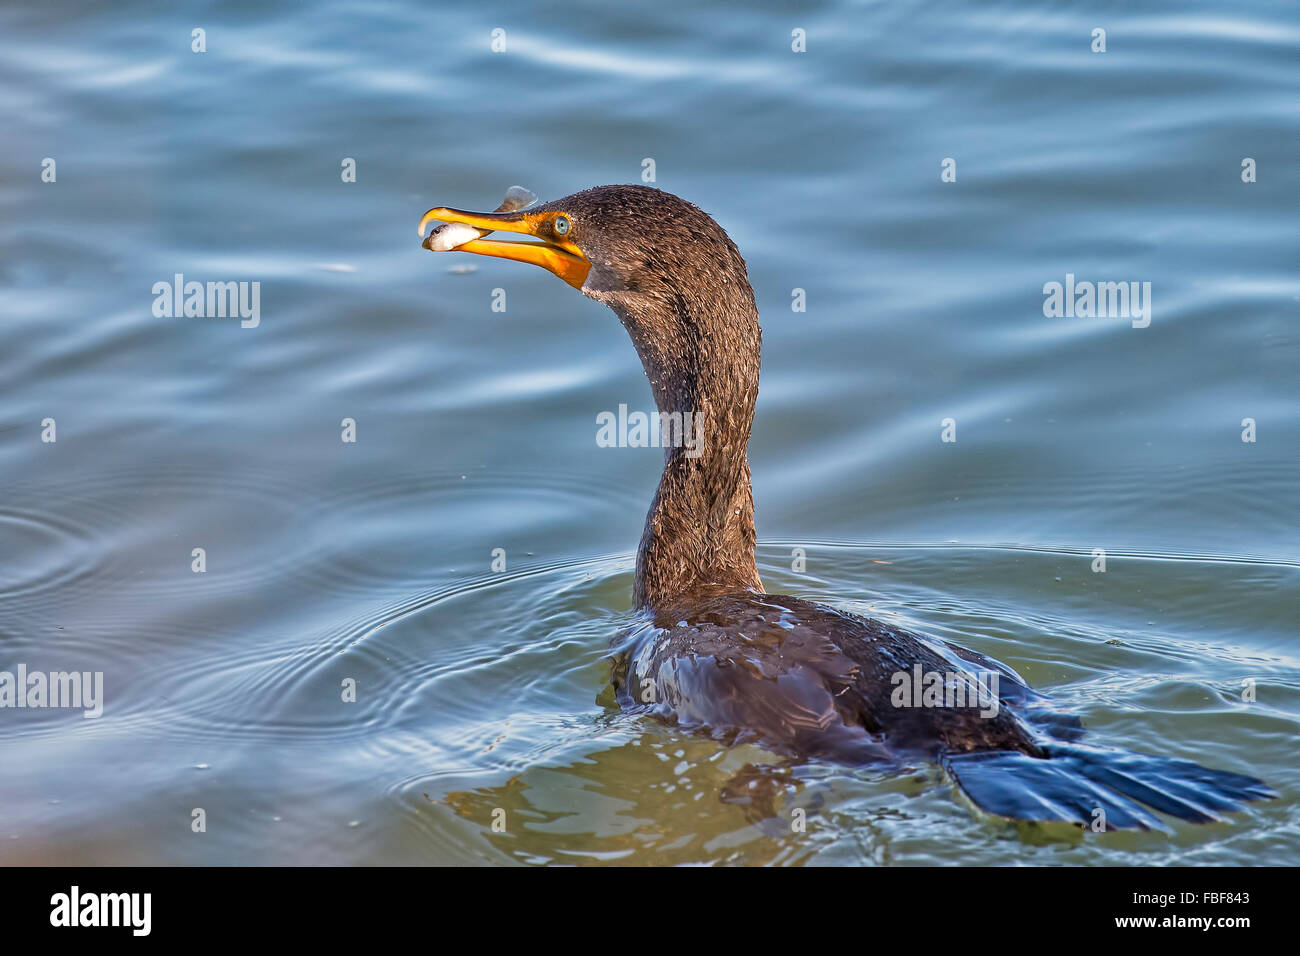 Double-crested Cormorant with Fish - Stock Image